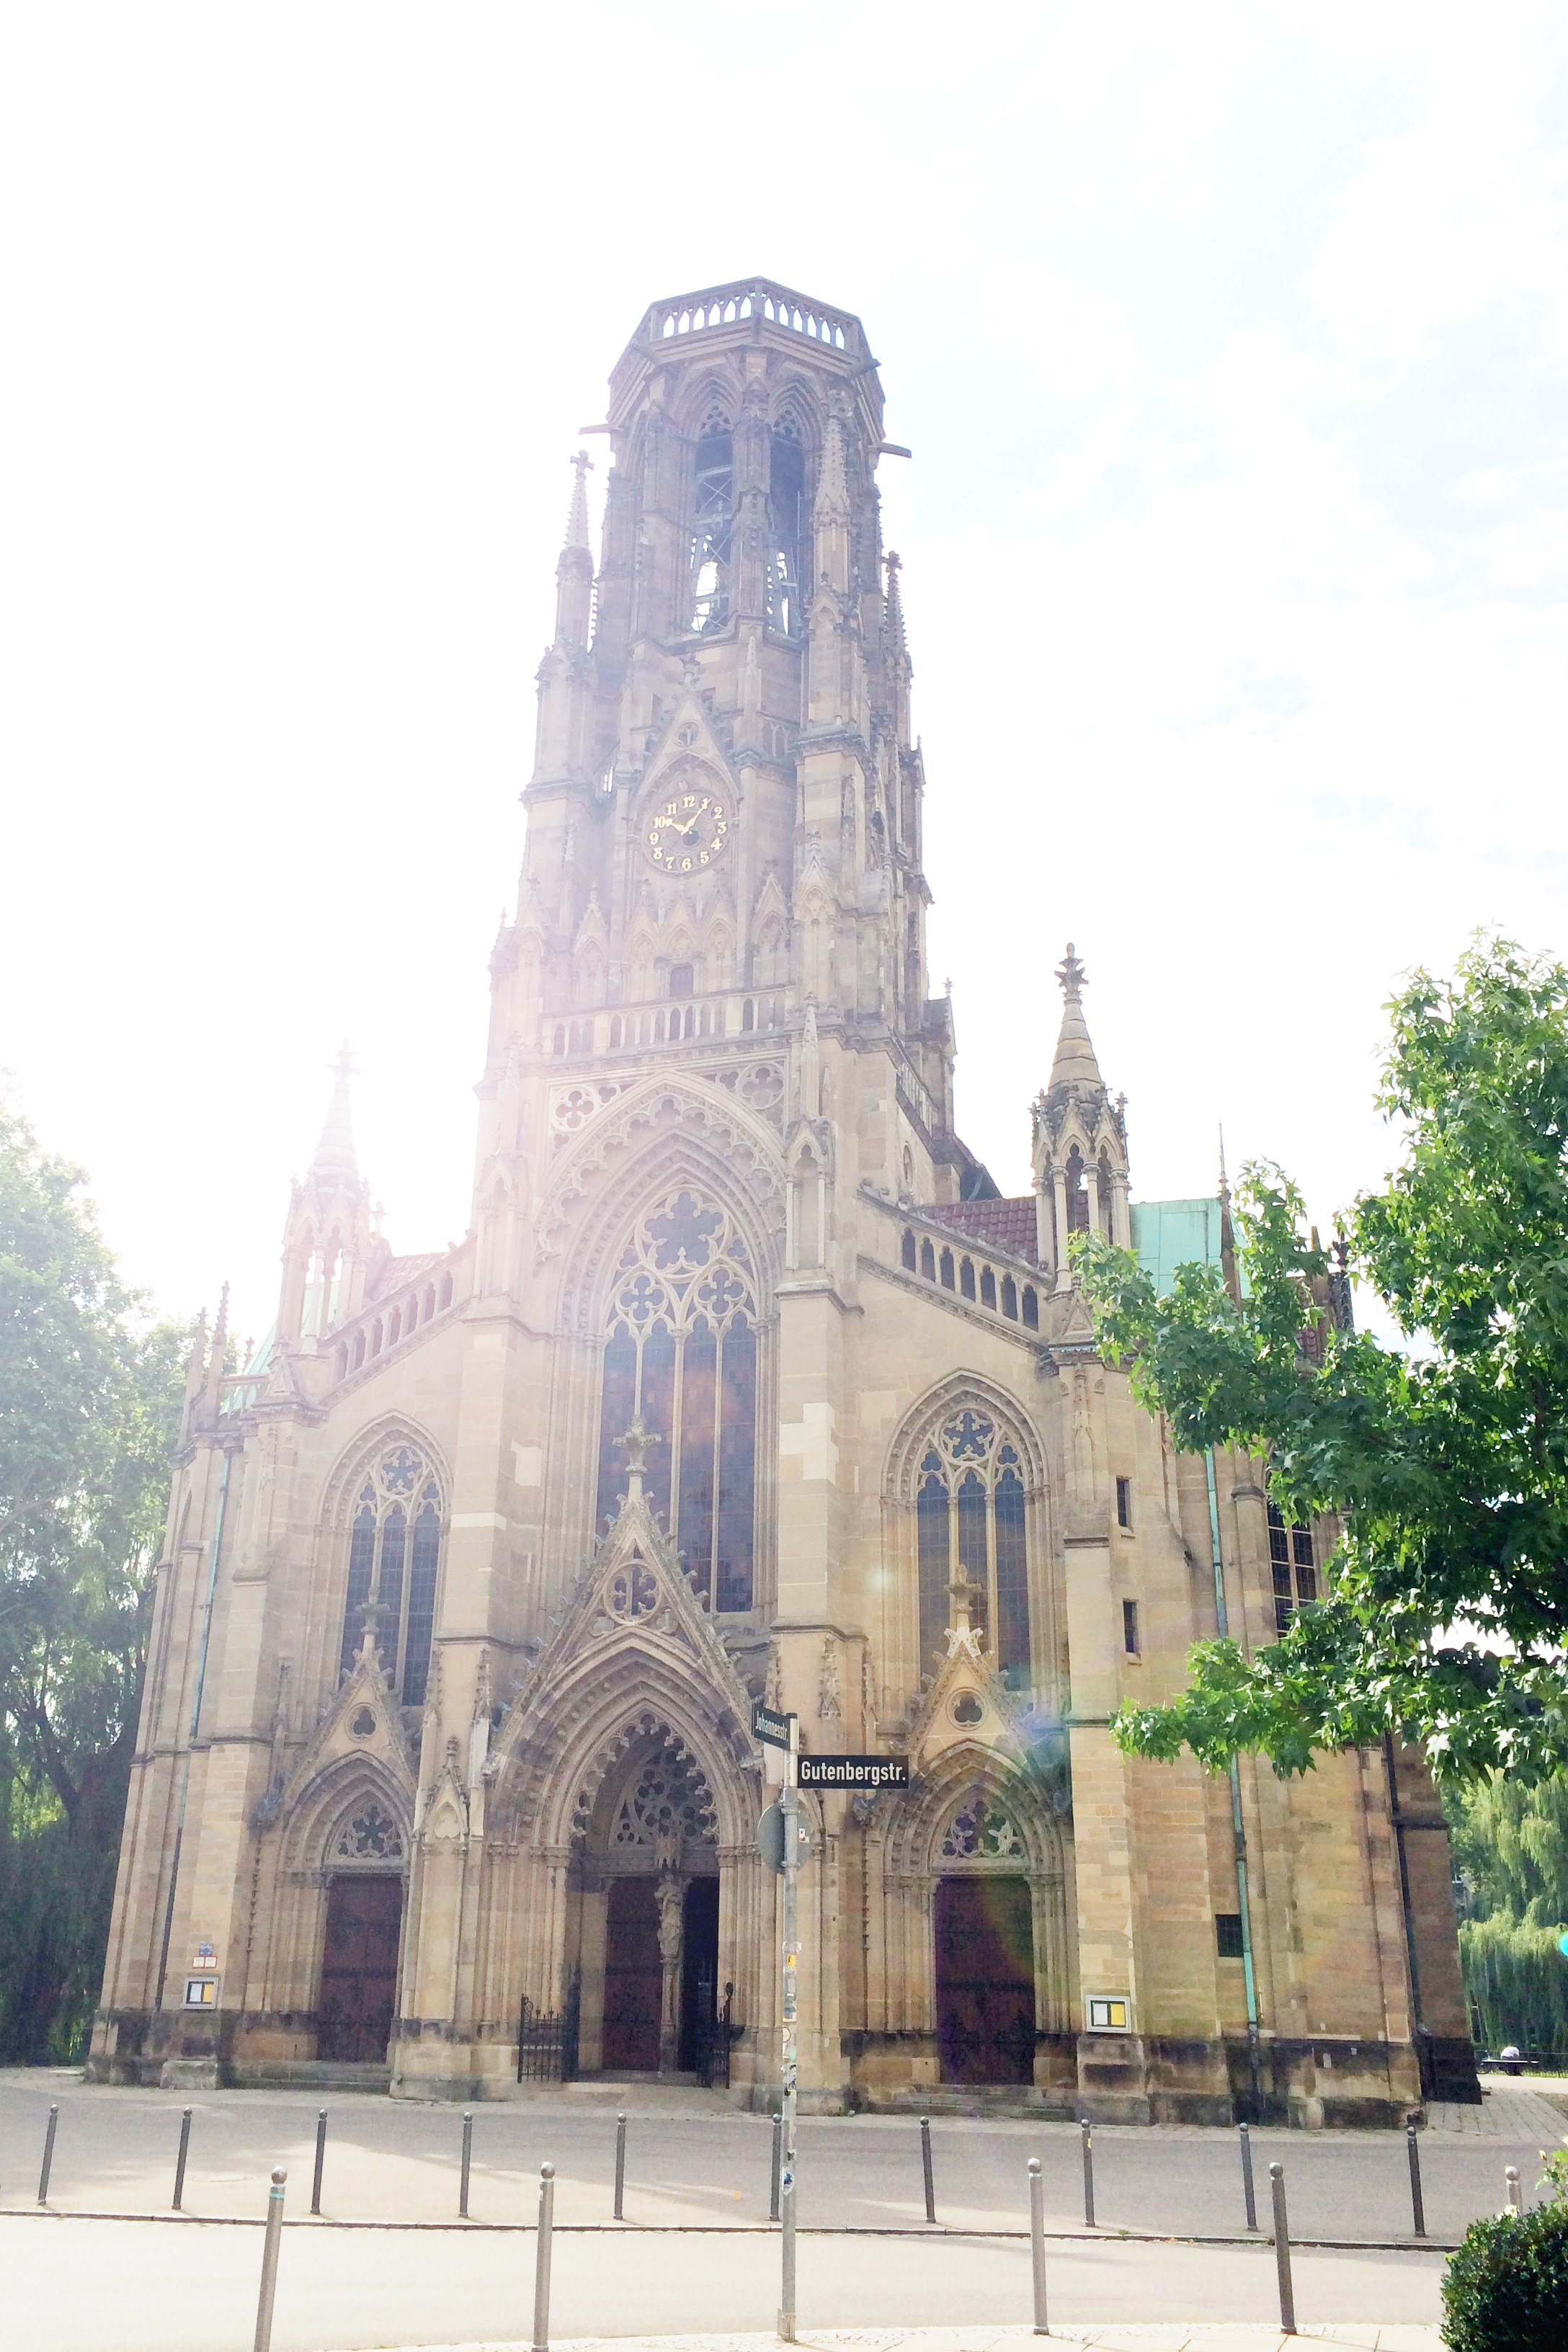 St. John's Church has a cool neo-Gothic exterior. The front faces a street...